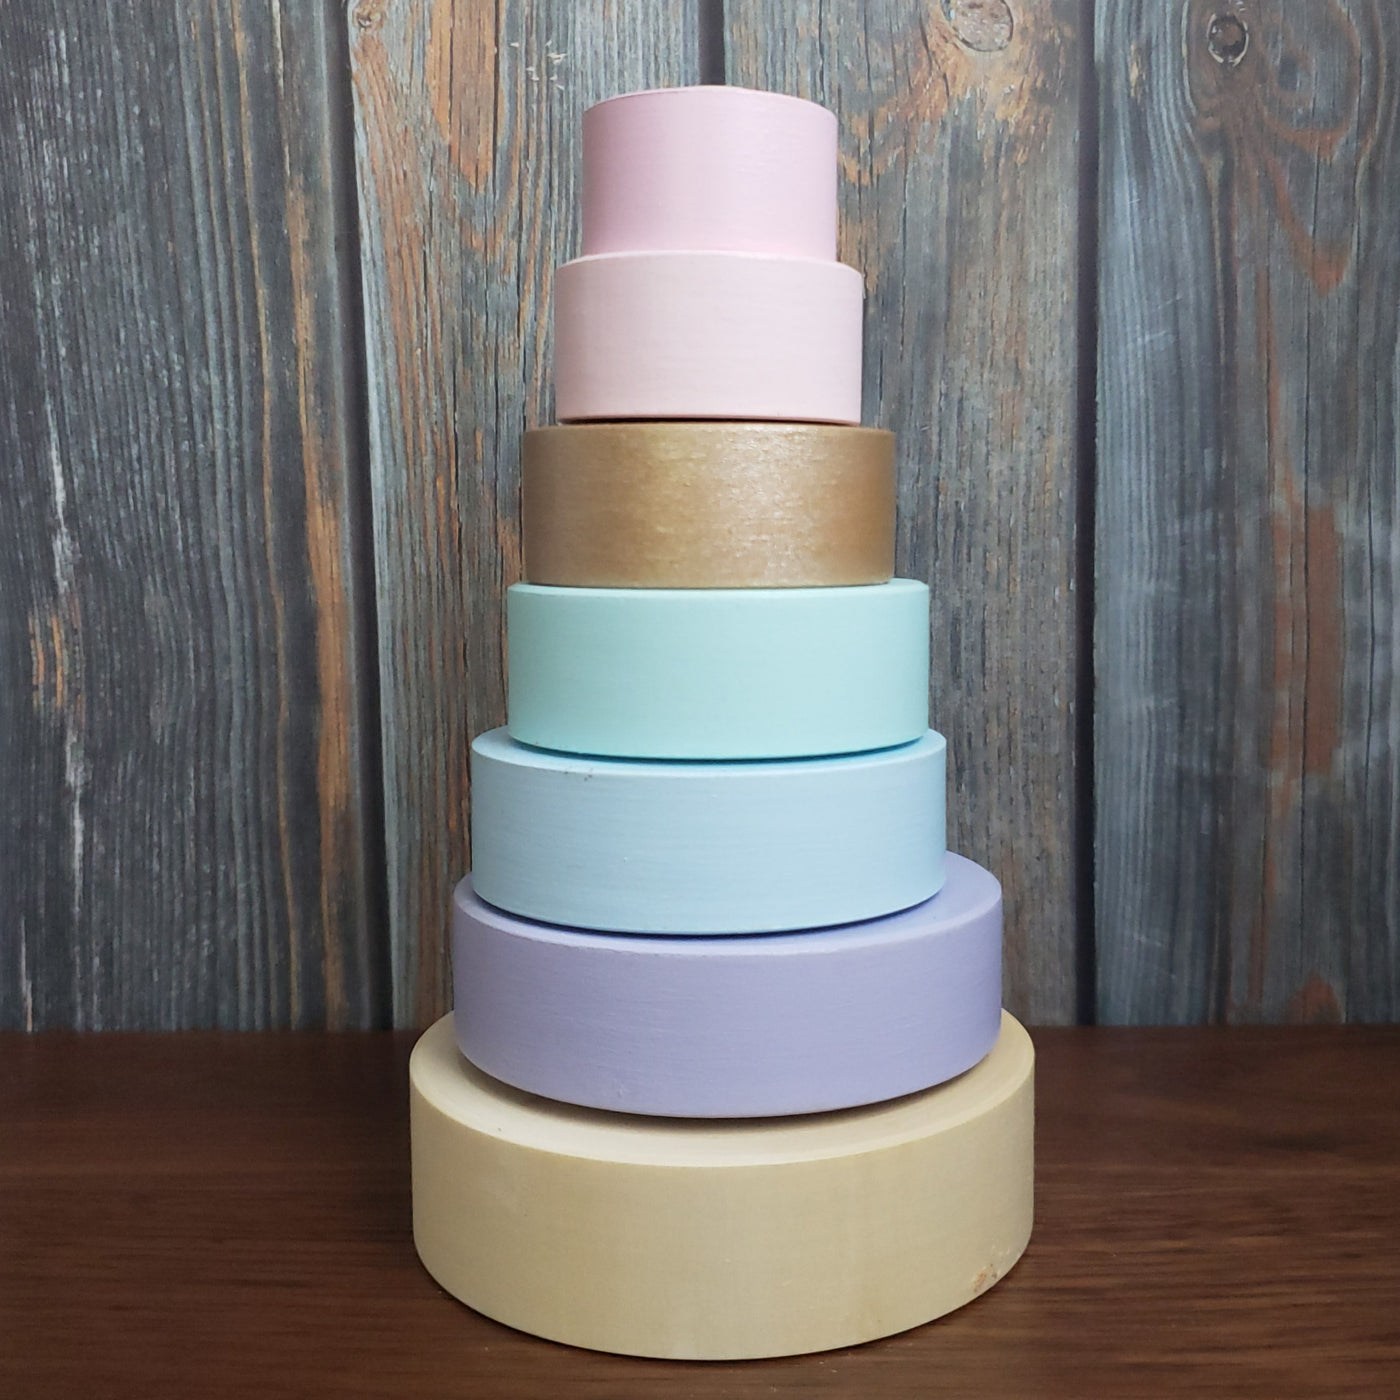 US stockist of Children of the Trees hand painted ring stacker wooden toy in pastel hues